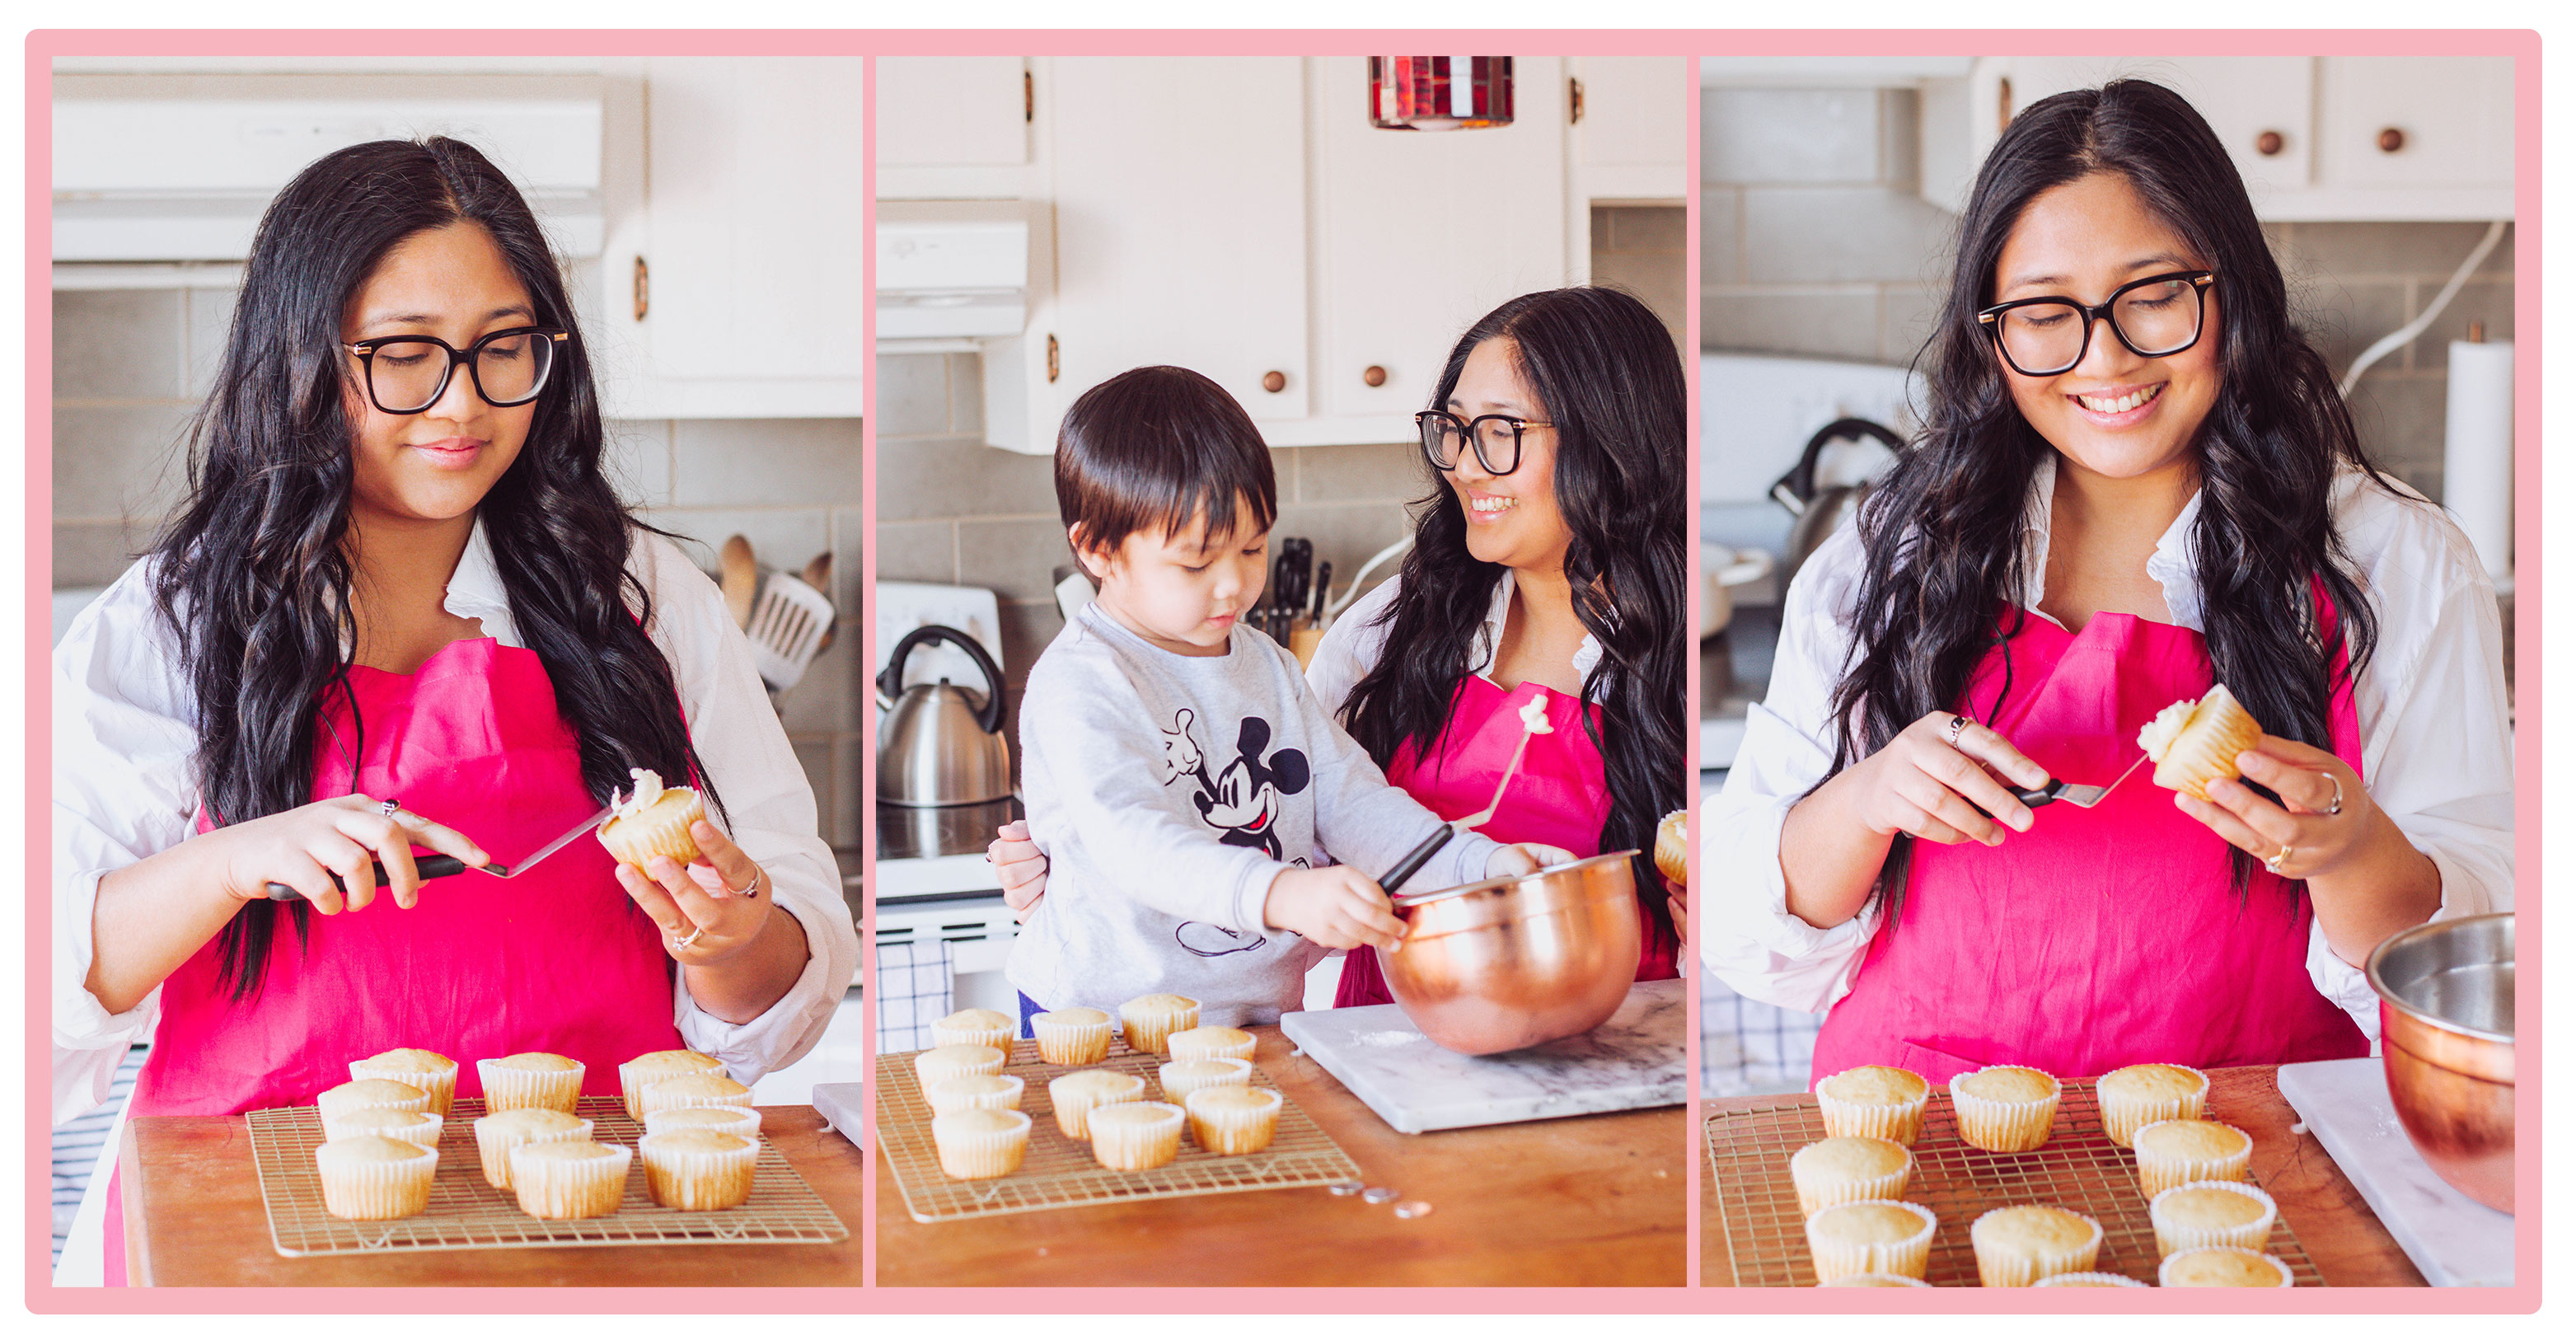 Read all about the story behind the Fabulous Habits food blog by Lisa Favre